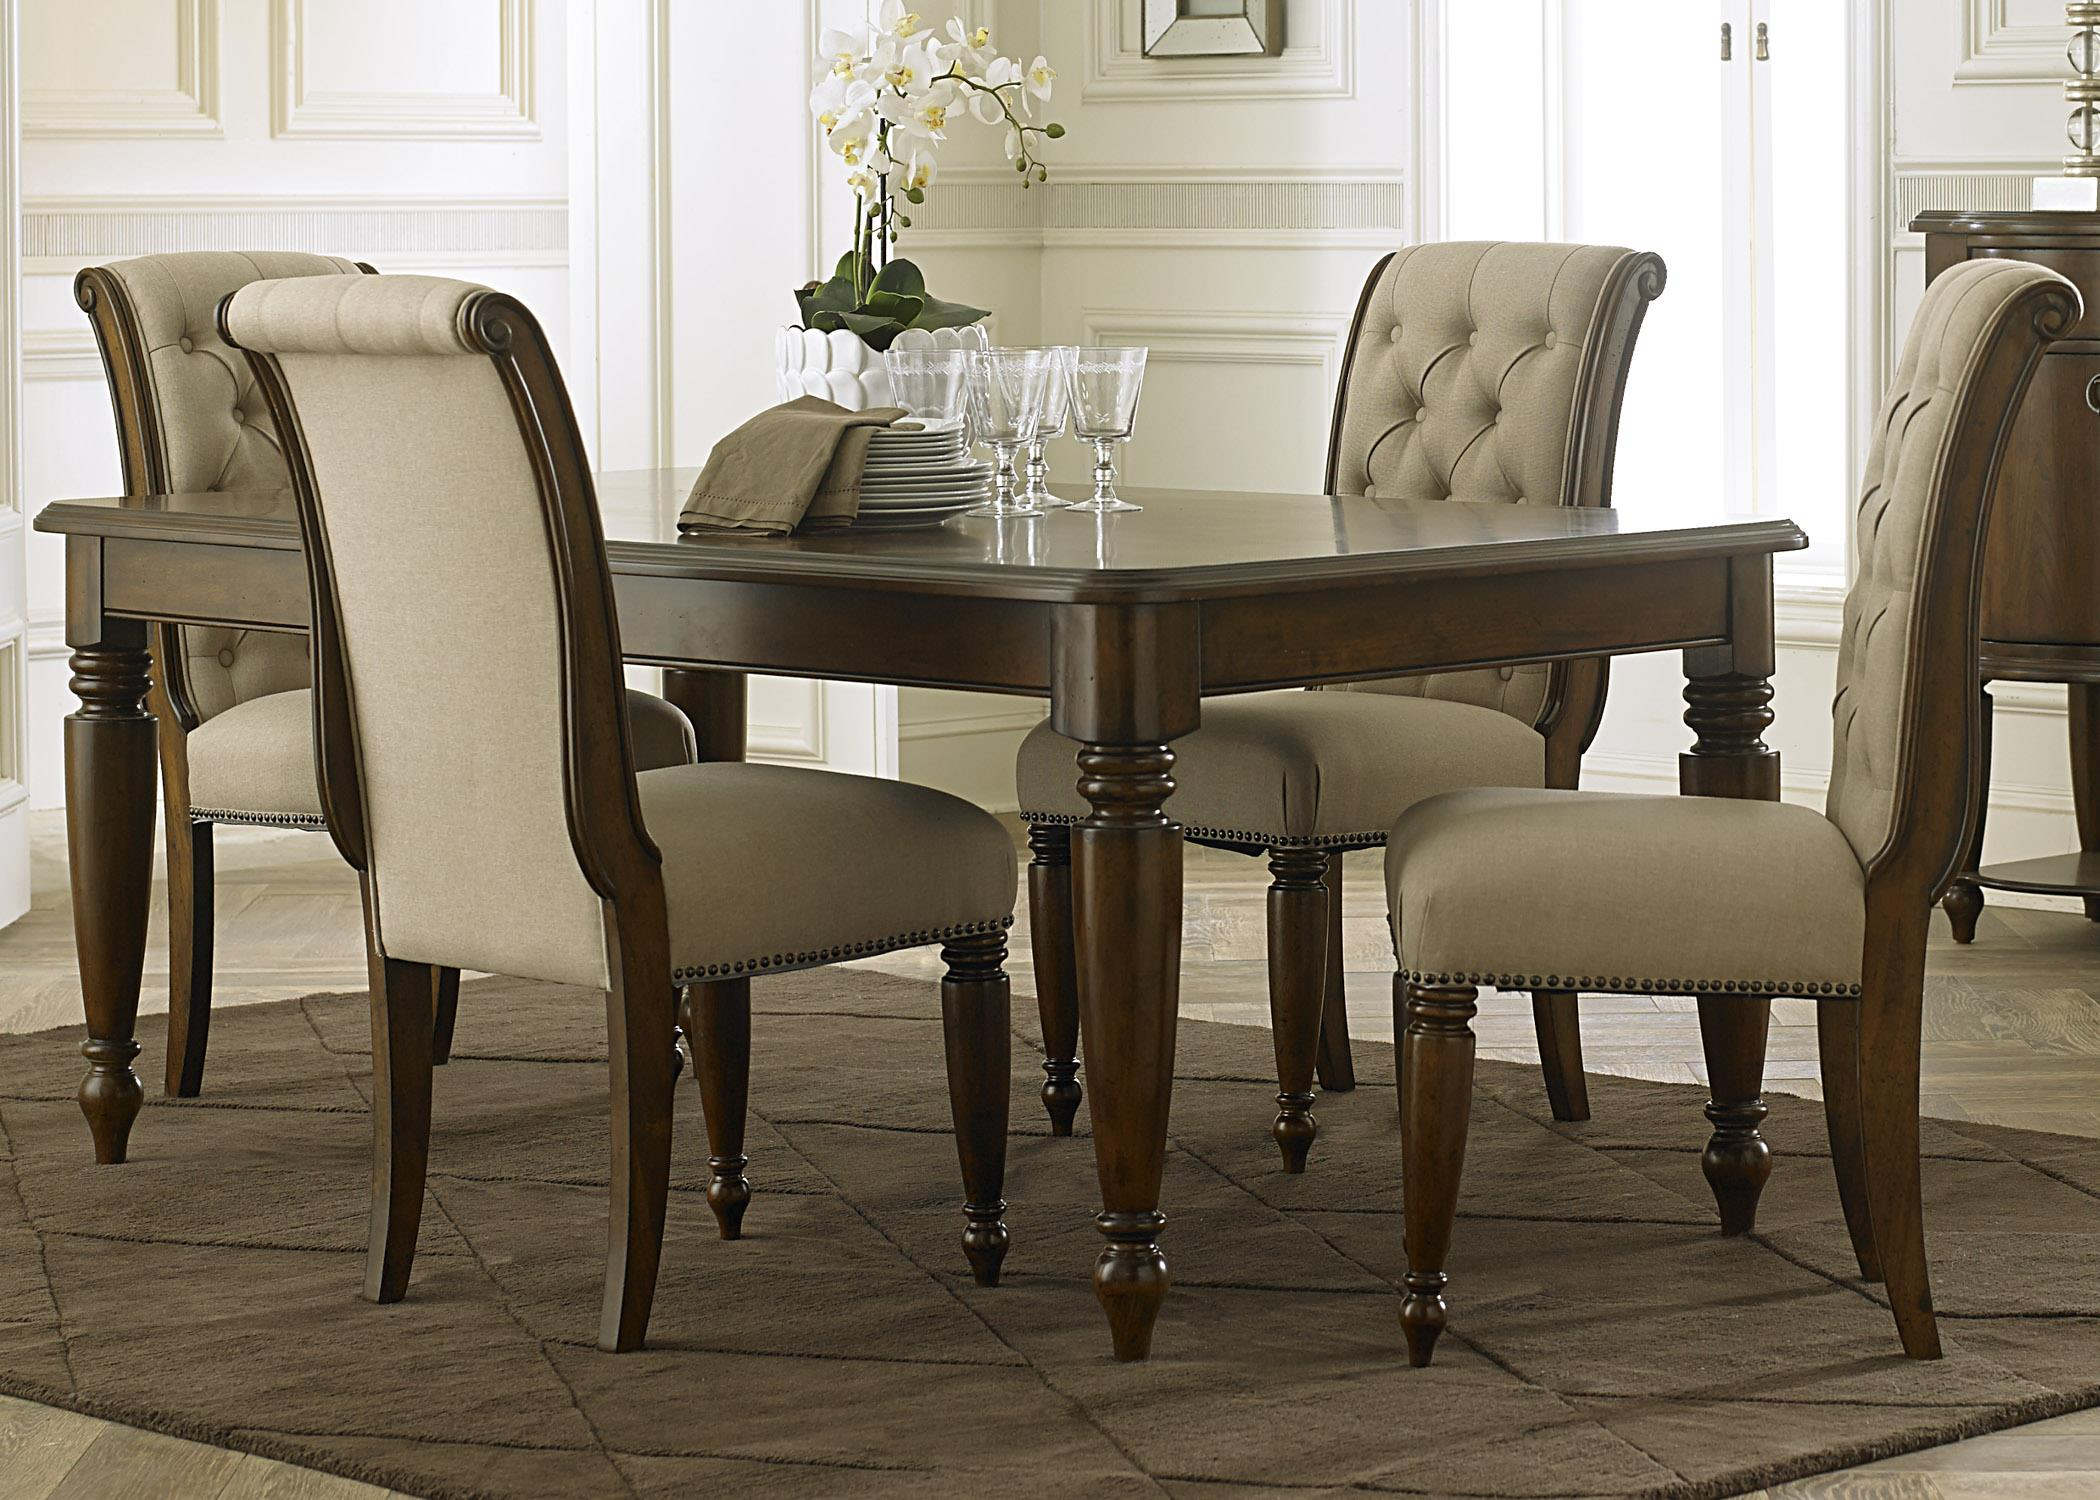 Liberty Furniture Cotswold  5 Piece Rectangular Table Set - Item Number: 545-DR-5RLS